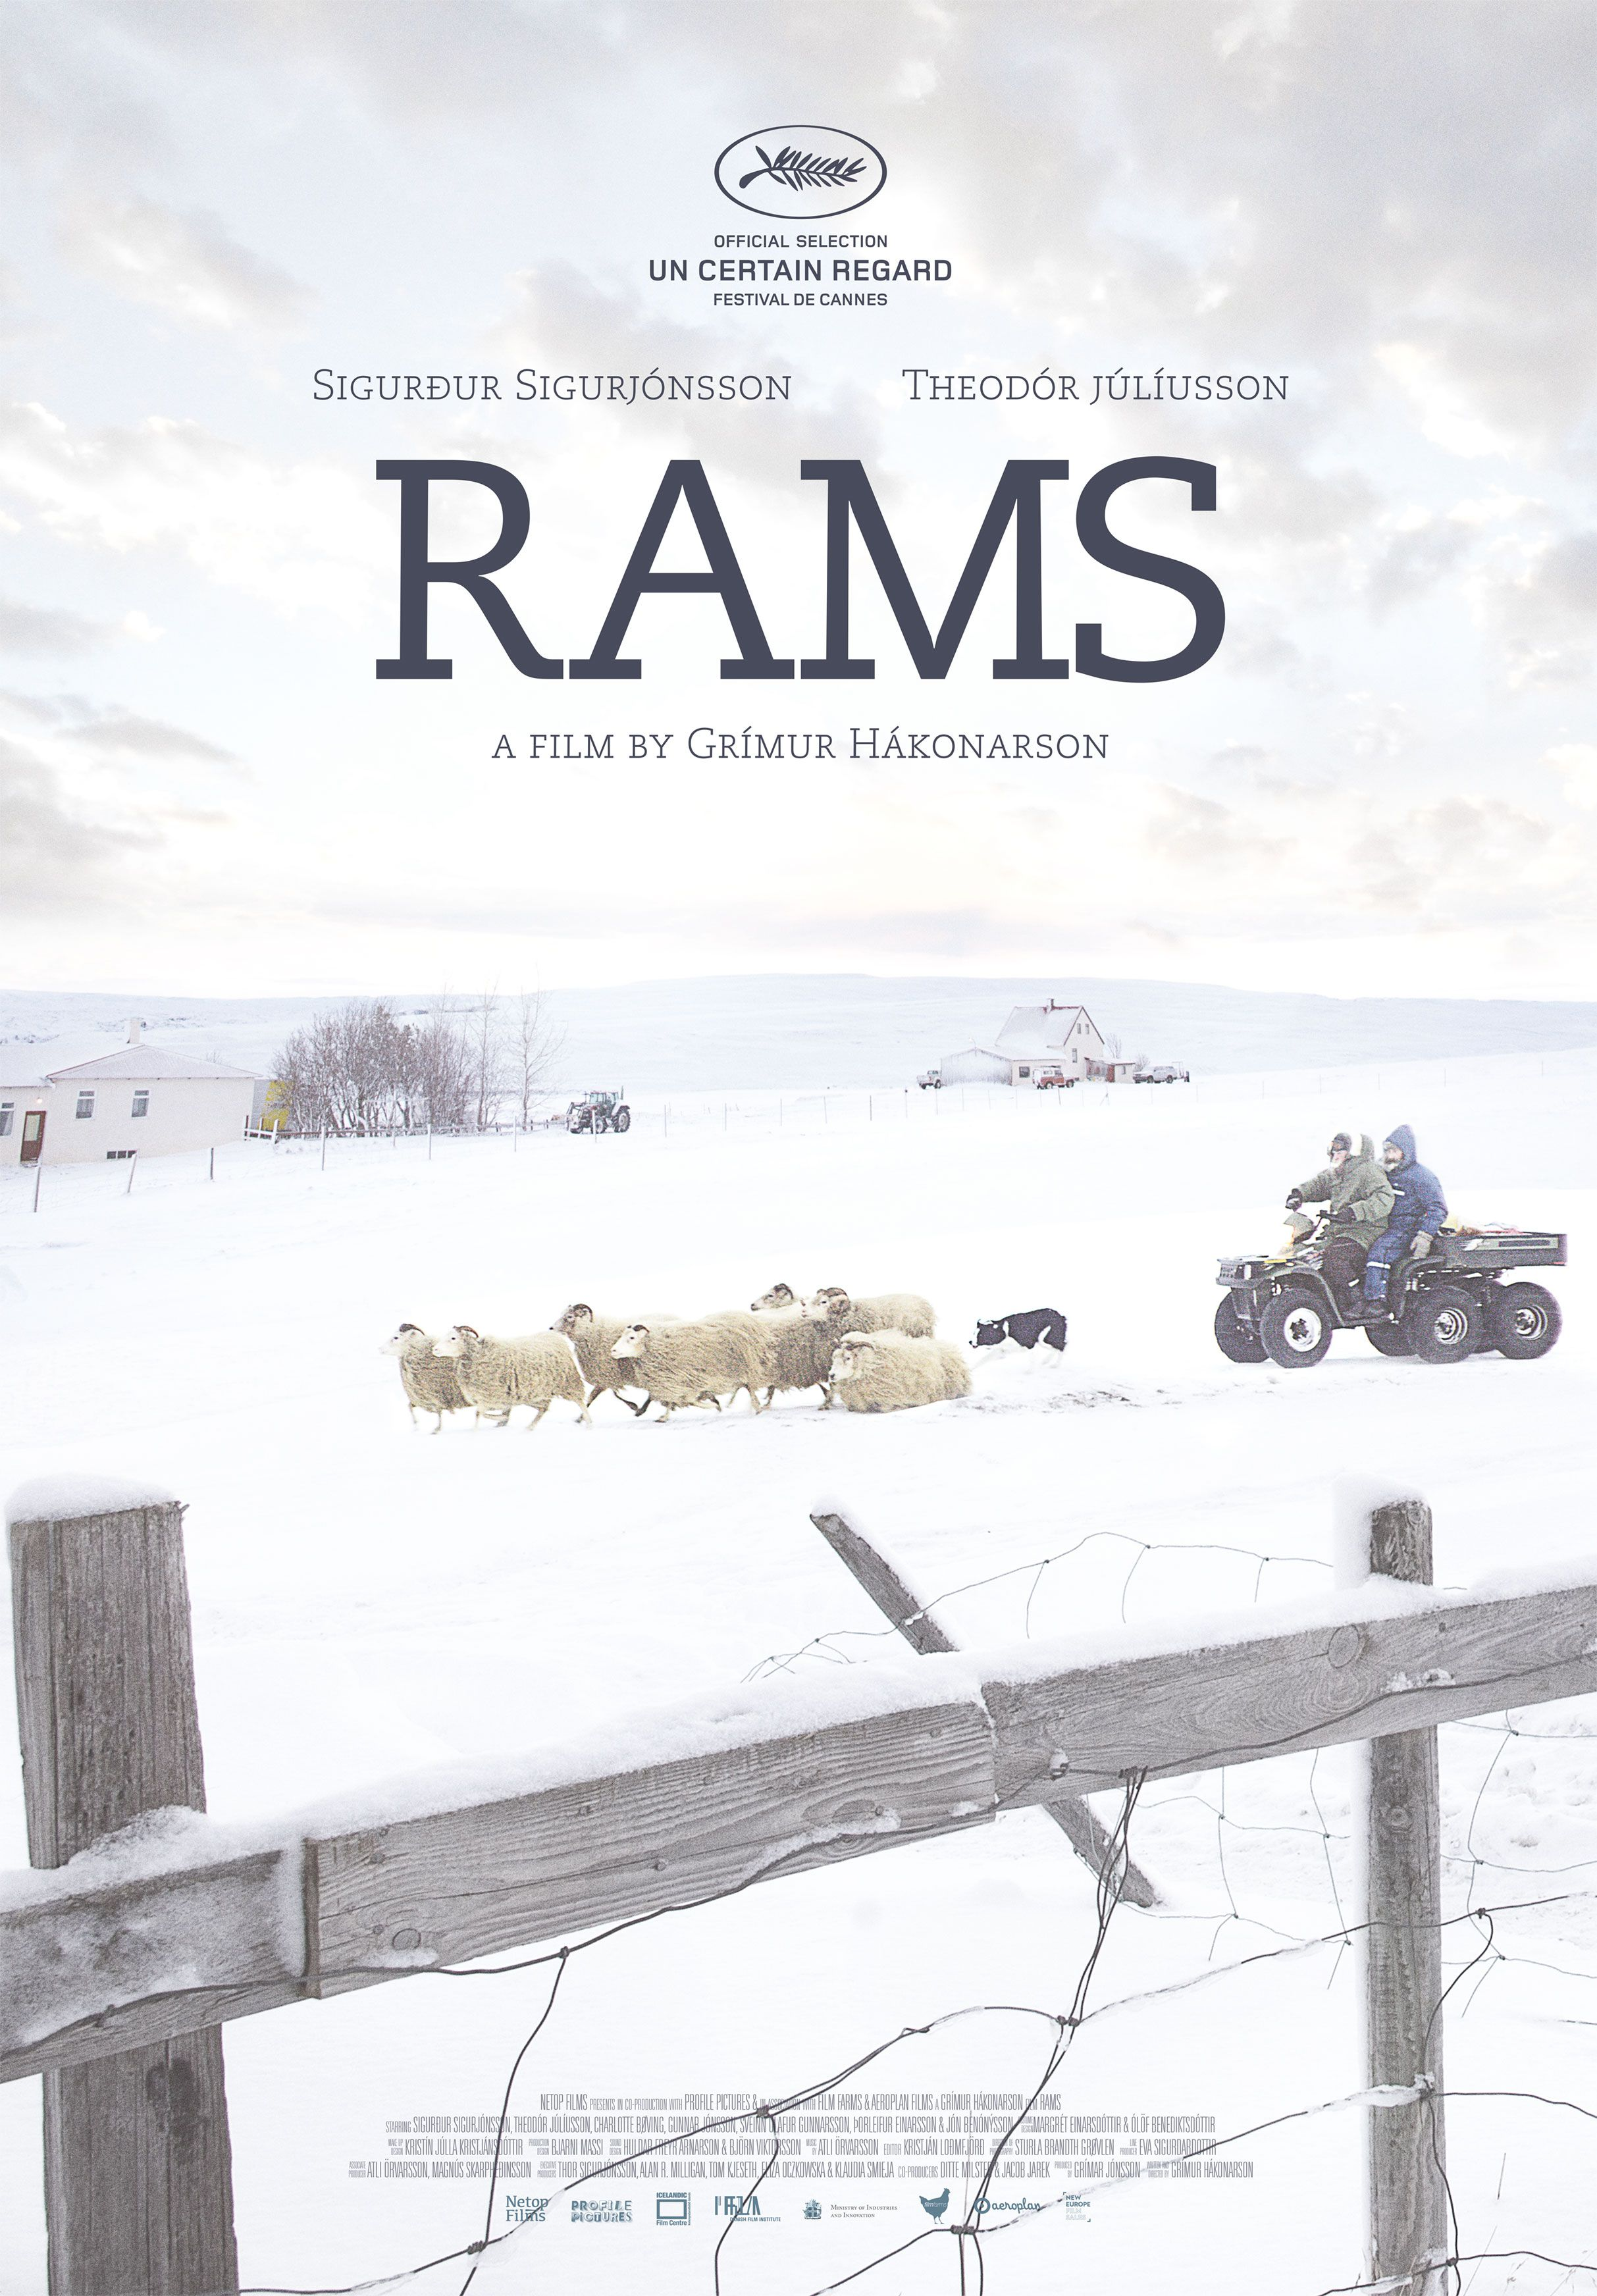 A Touching Film About Brotherly Love Life Of Scandinavian Shepherds With Monumental Icelandic Nature In The Background Film Big Movie Posters Cannes